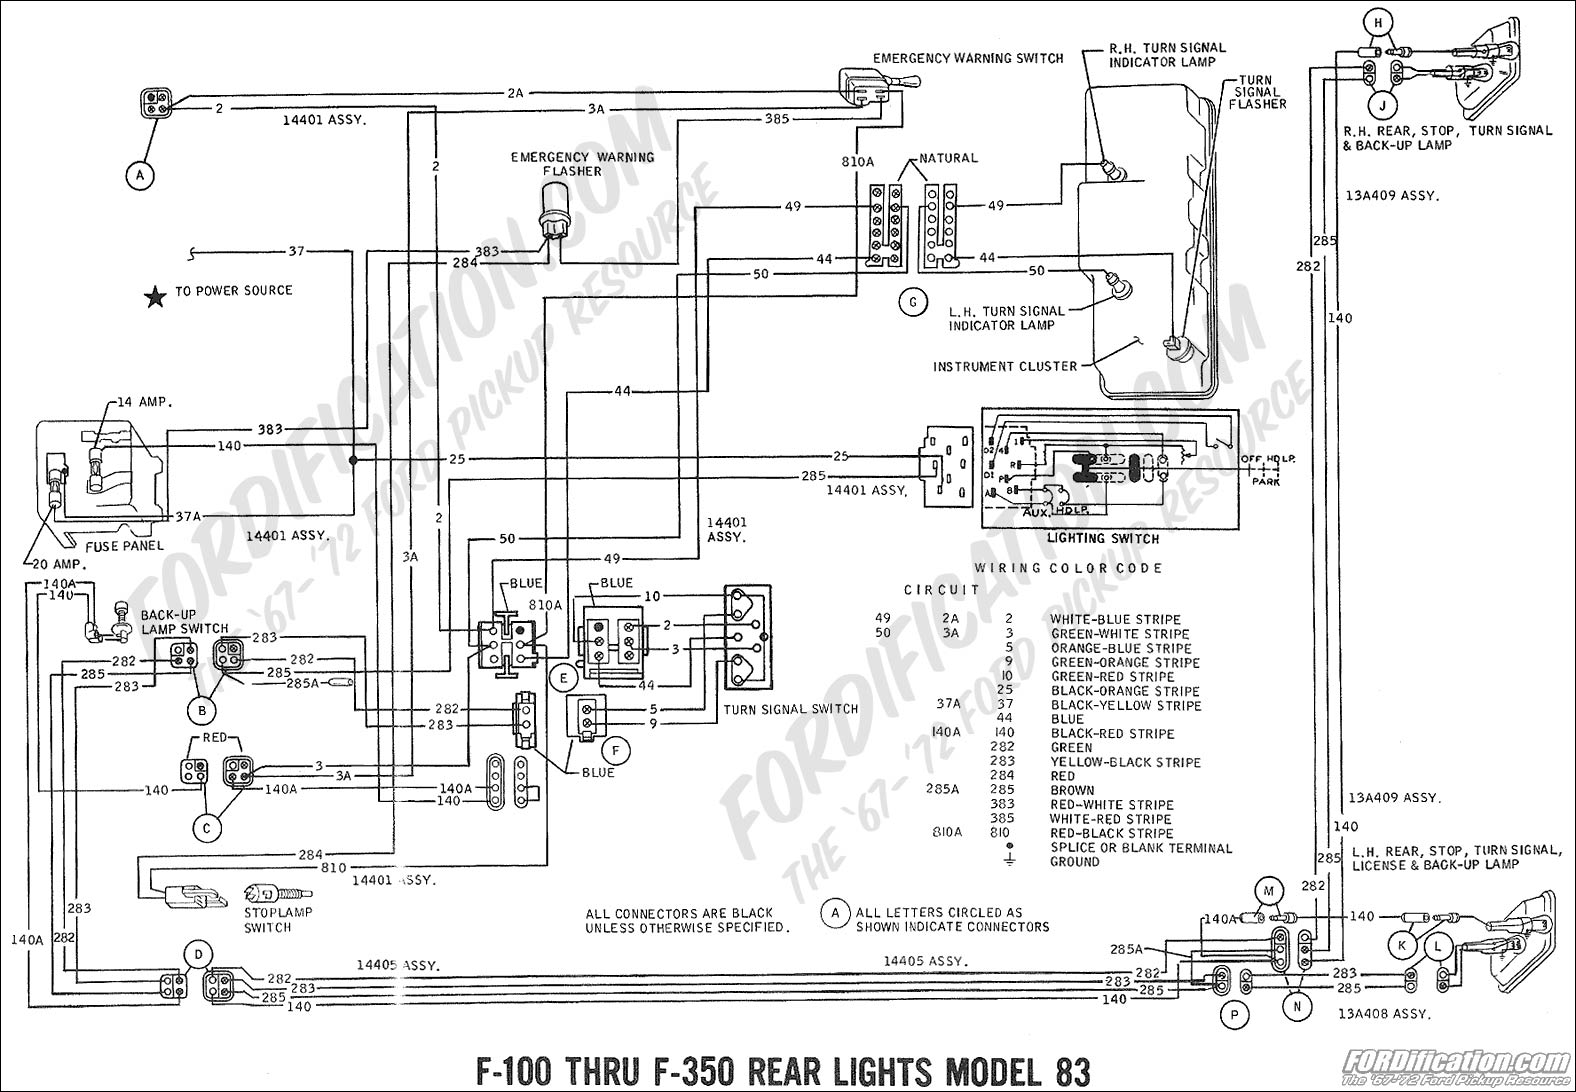 2011 F250 Trailer Wiring Diagram Lights House Symbols Ford F 450 For Engine Schematics And F450 Diagrams U2022 Rh Seniorlivinguniversity Co 2006 Diesel 1994 250